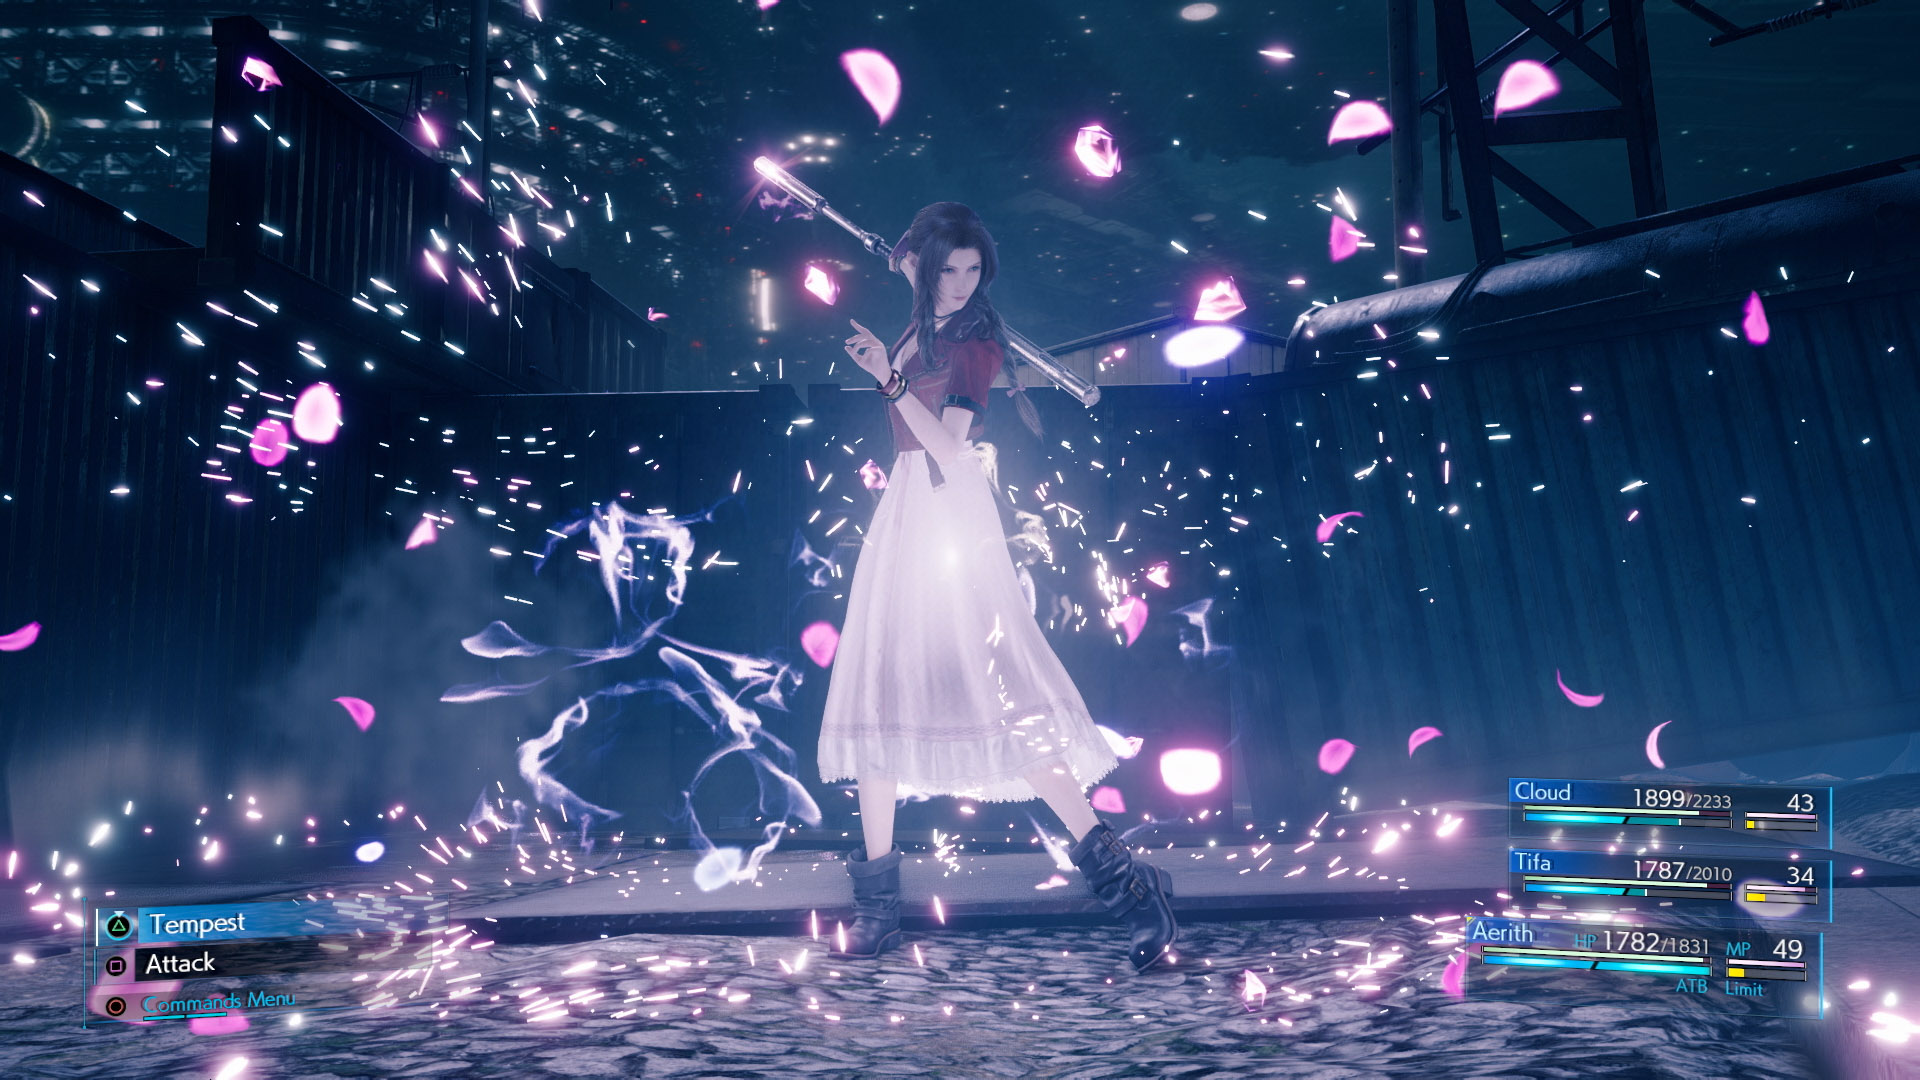 Final Fantasy 7 Remake Aerith Tempest